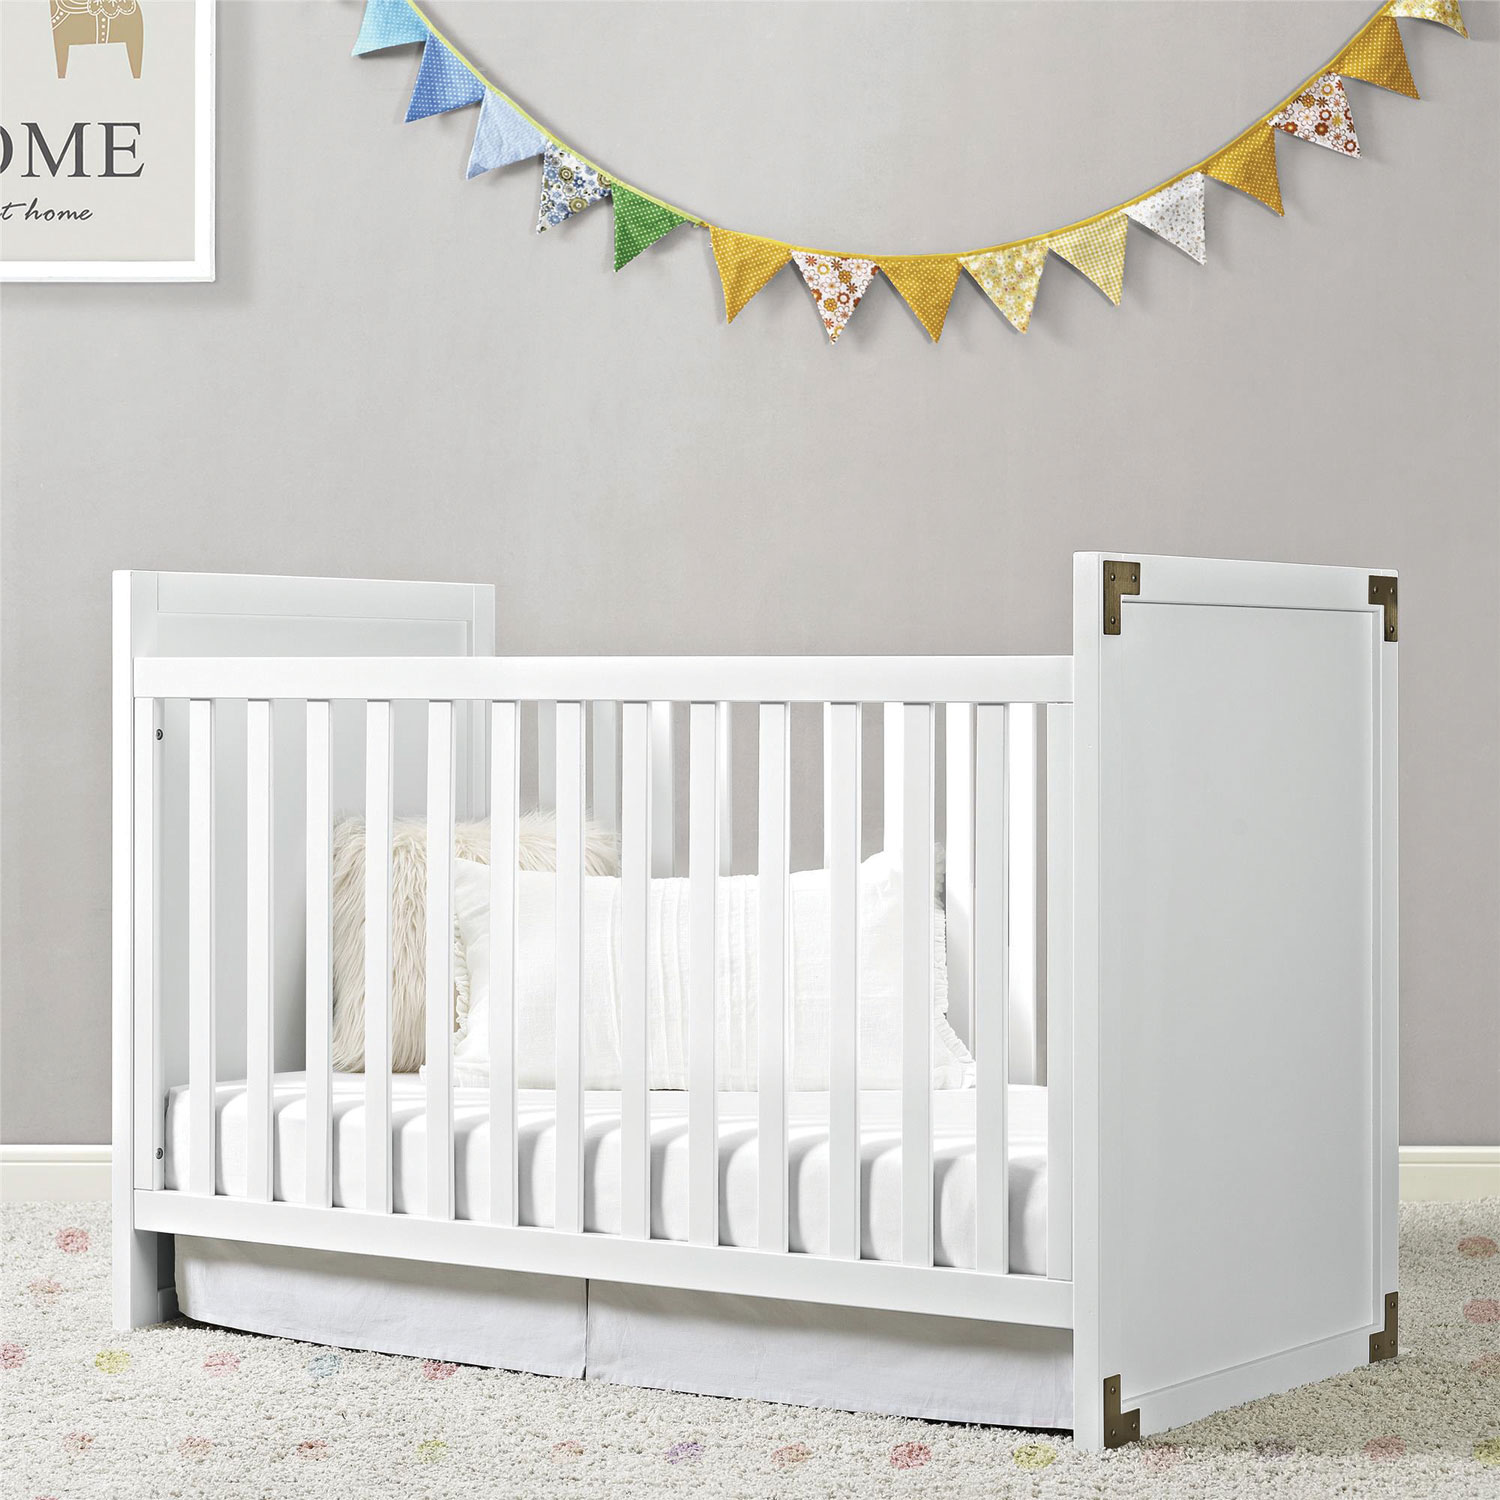 Used crib for sale edmonton - Baby Relax Miles 2 In 1 Convertible Wood Crib White